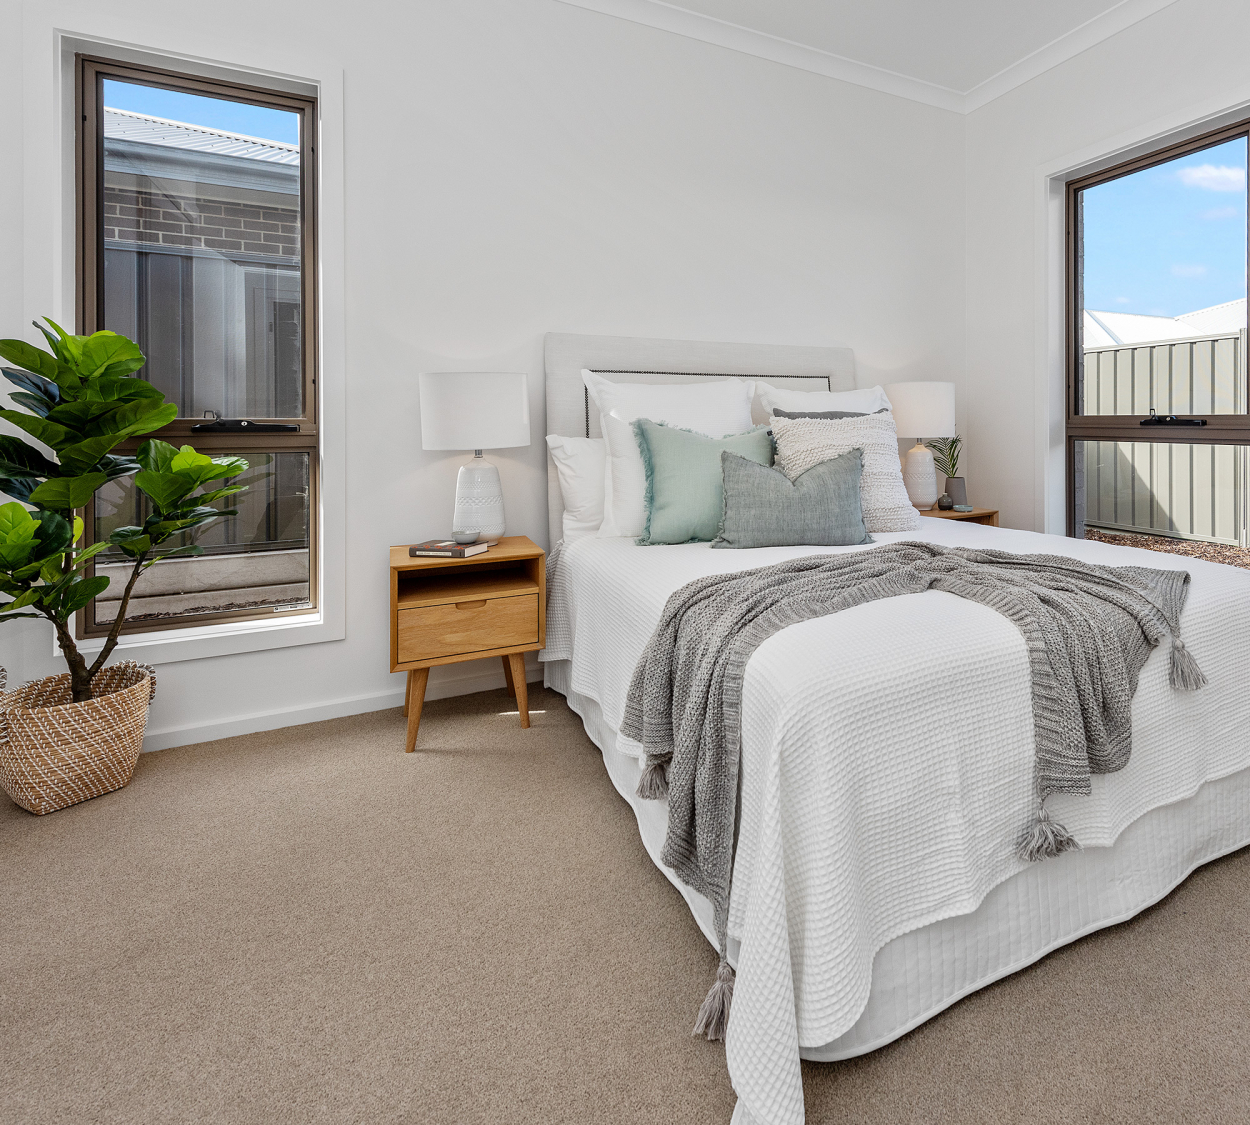 Sherwin Rise at Aurora   146/40 Chetwynd Grove - Wollert 3750 Retirement Property for Sale